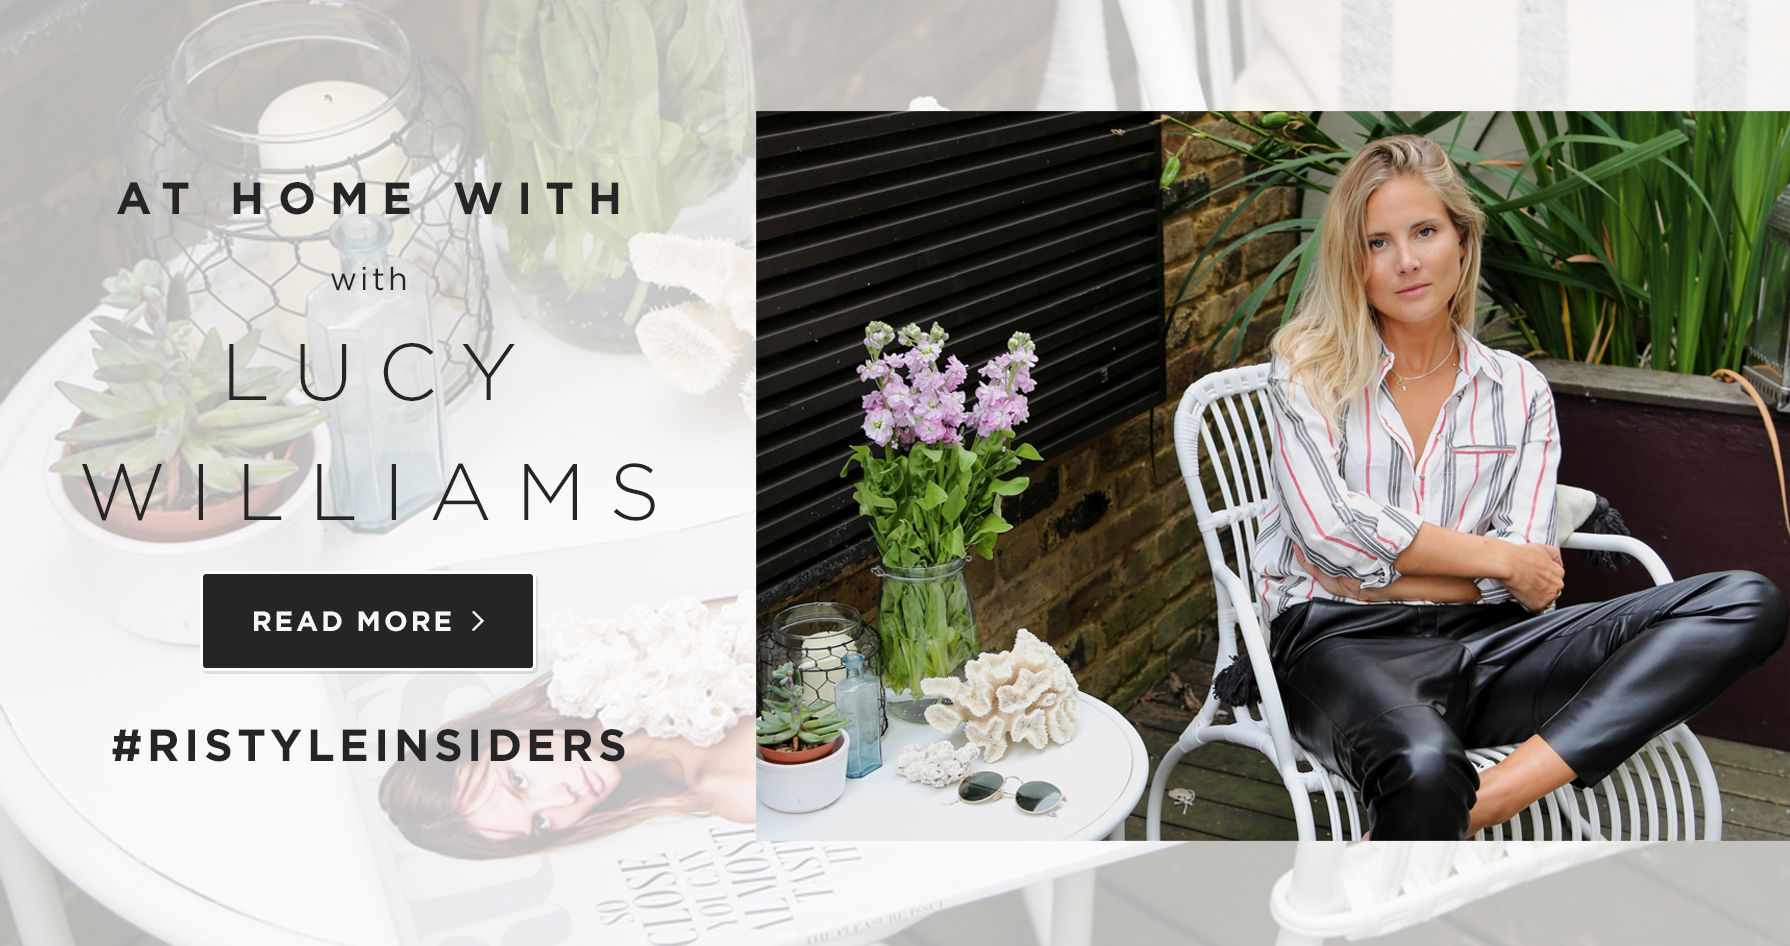 AT HOME WITH LUCY WILLIAMS